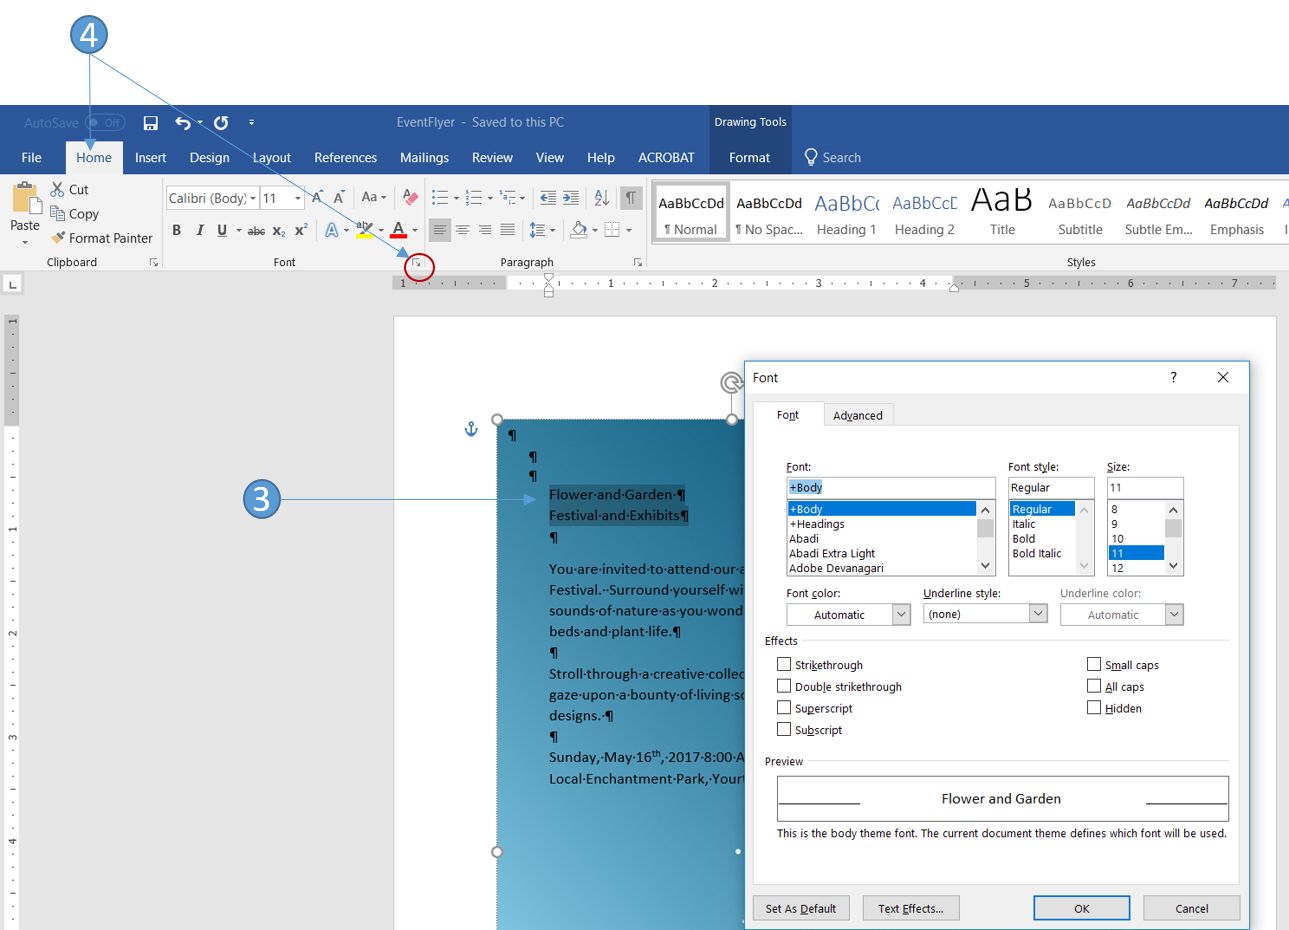 How to Use the Advanced Font Feature in Word to Enhance your